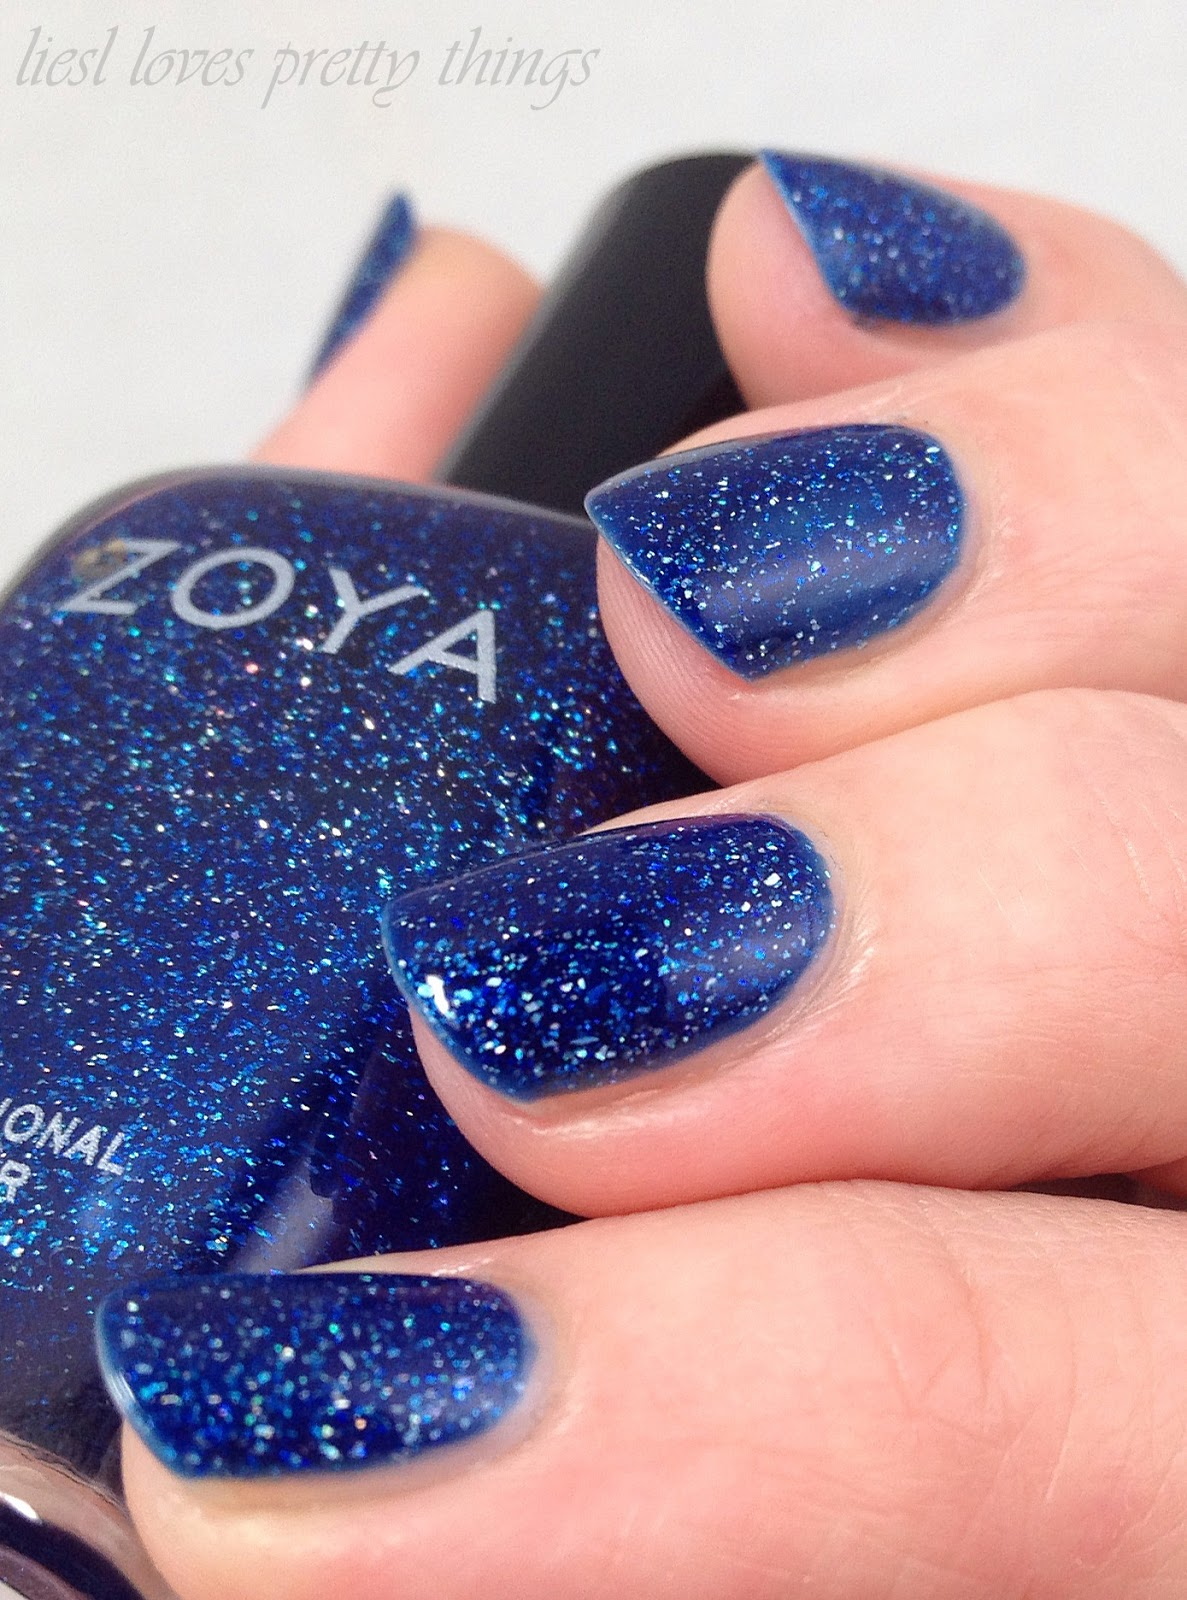 Zoya Dream swatch